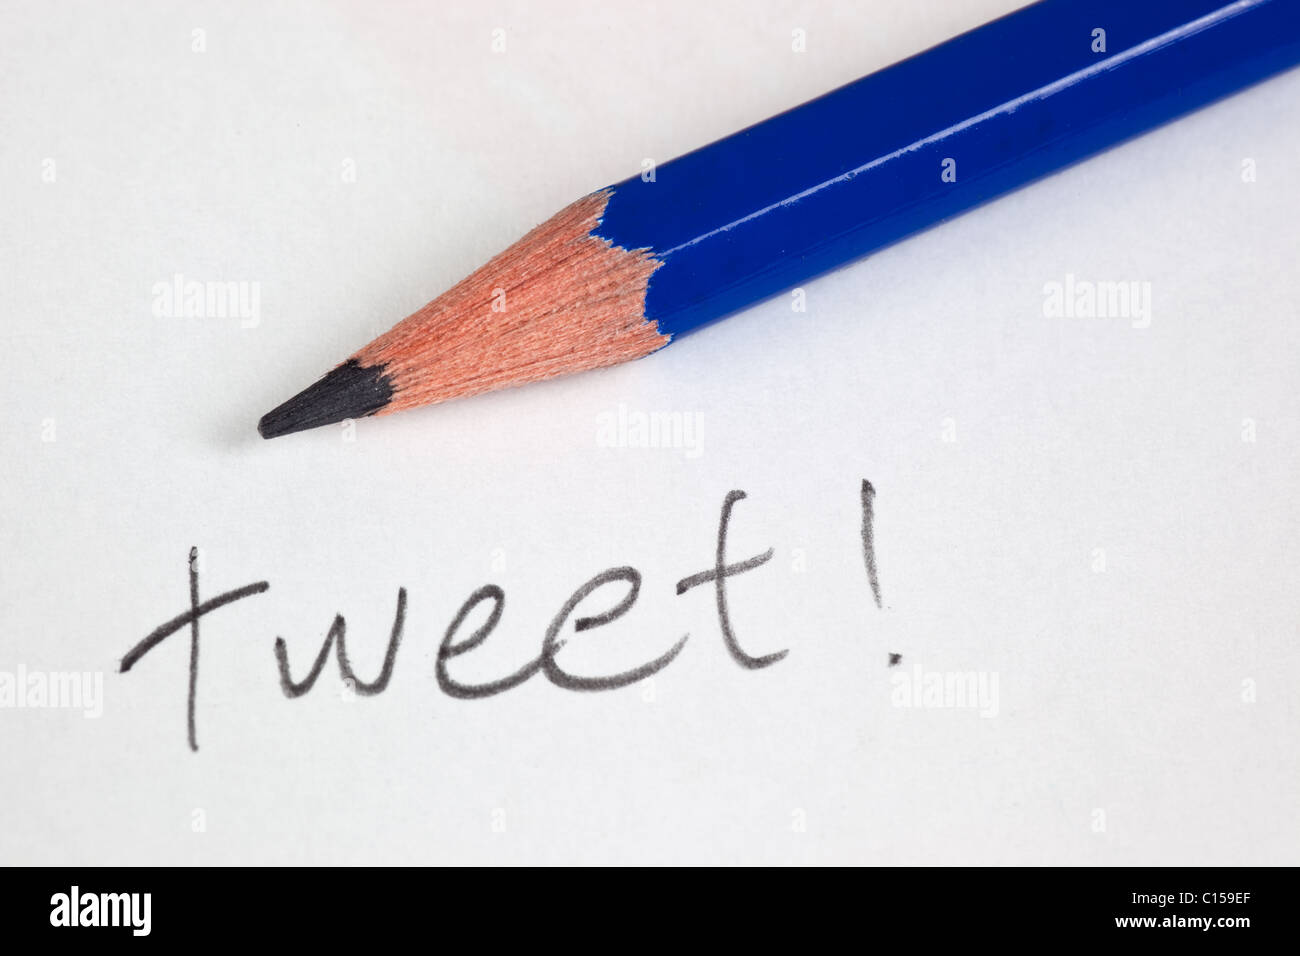 Pencil with the word TWEET on a piece of paper - Stock Image